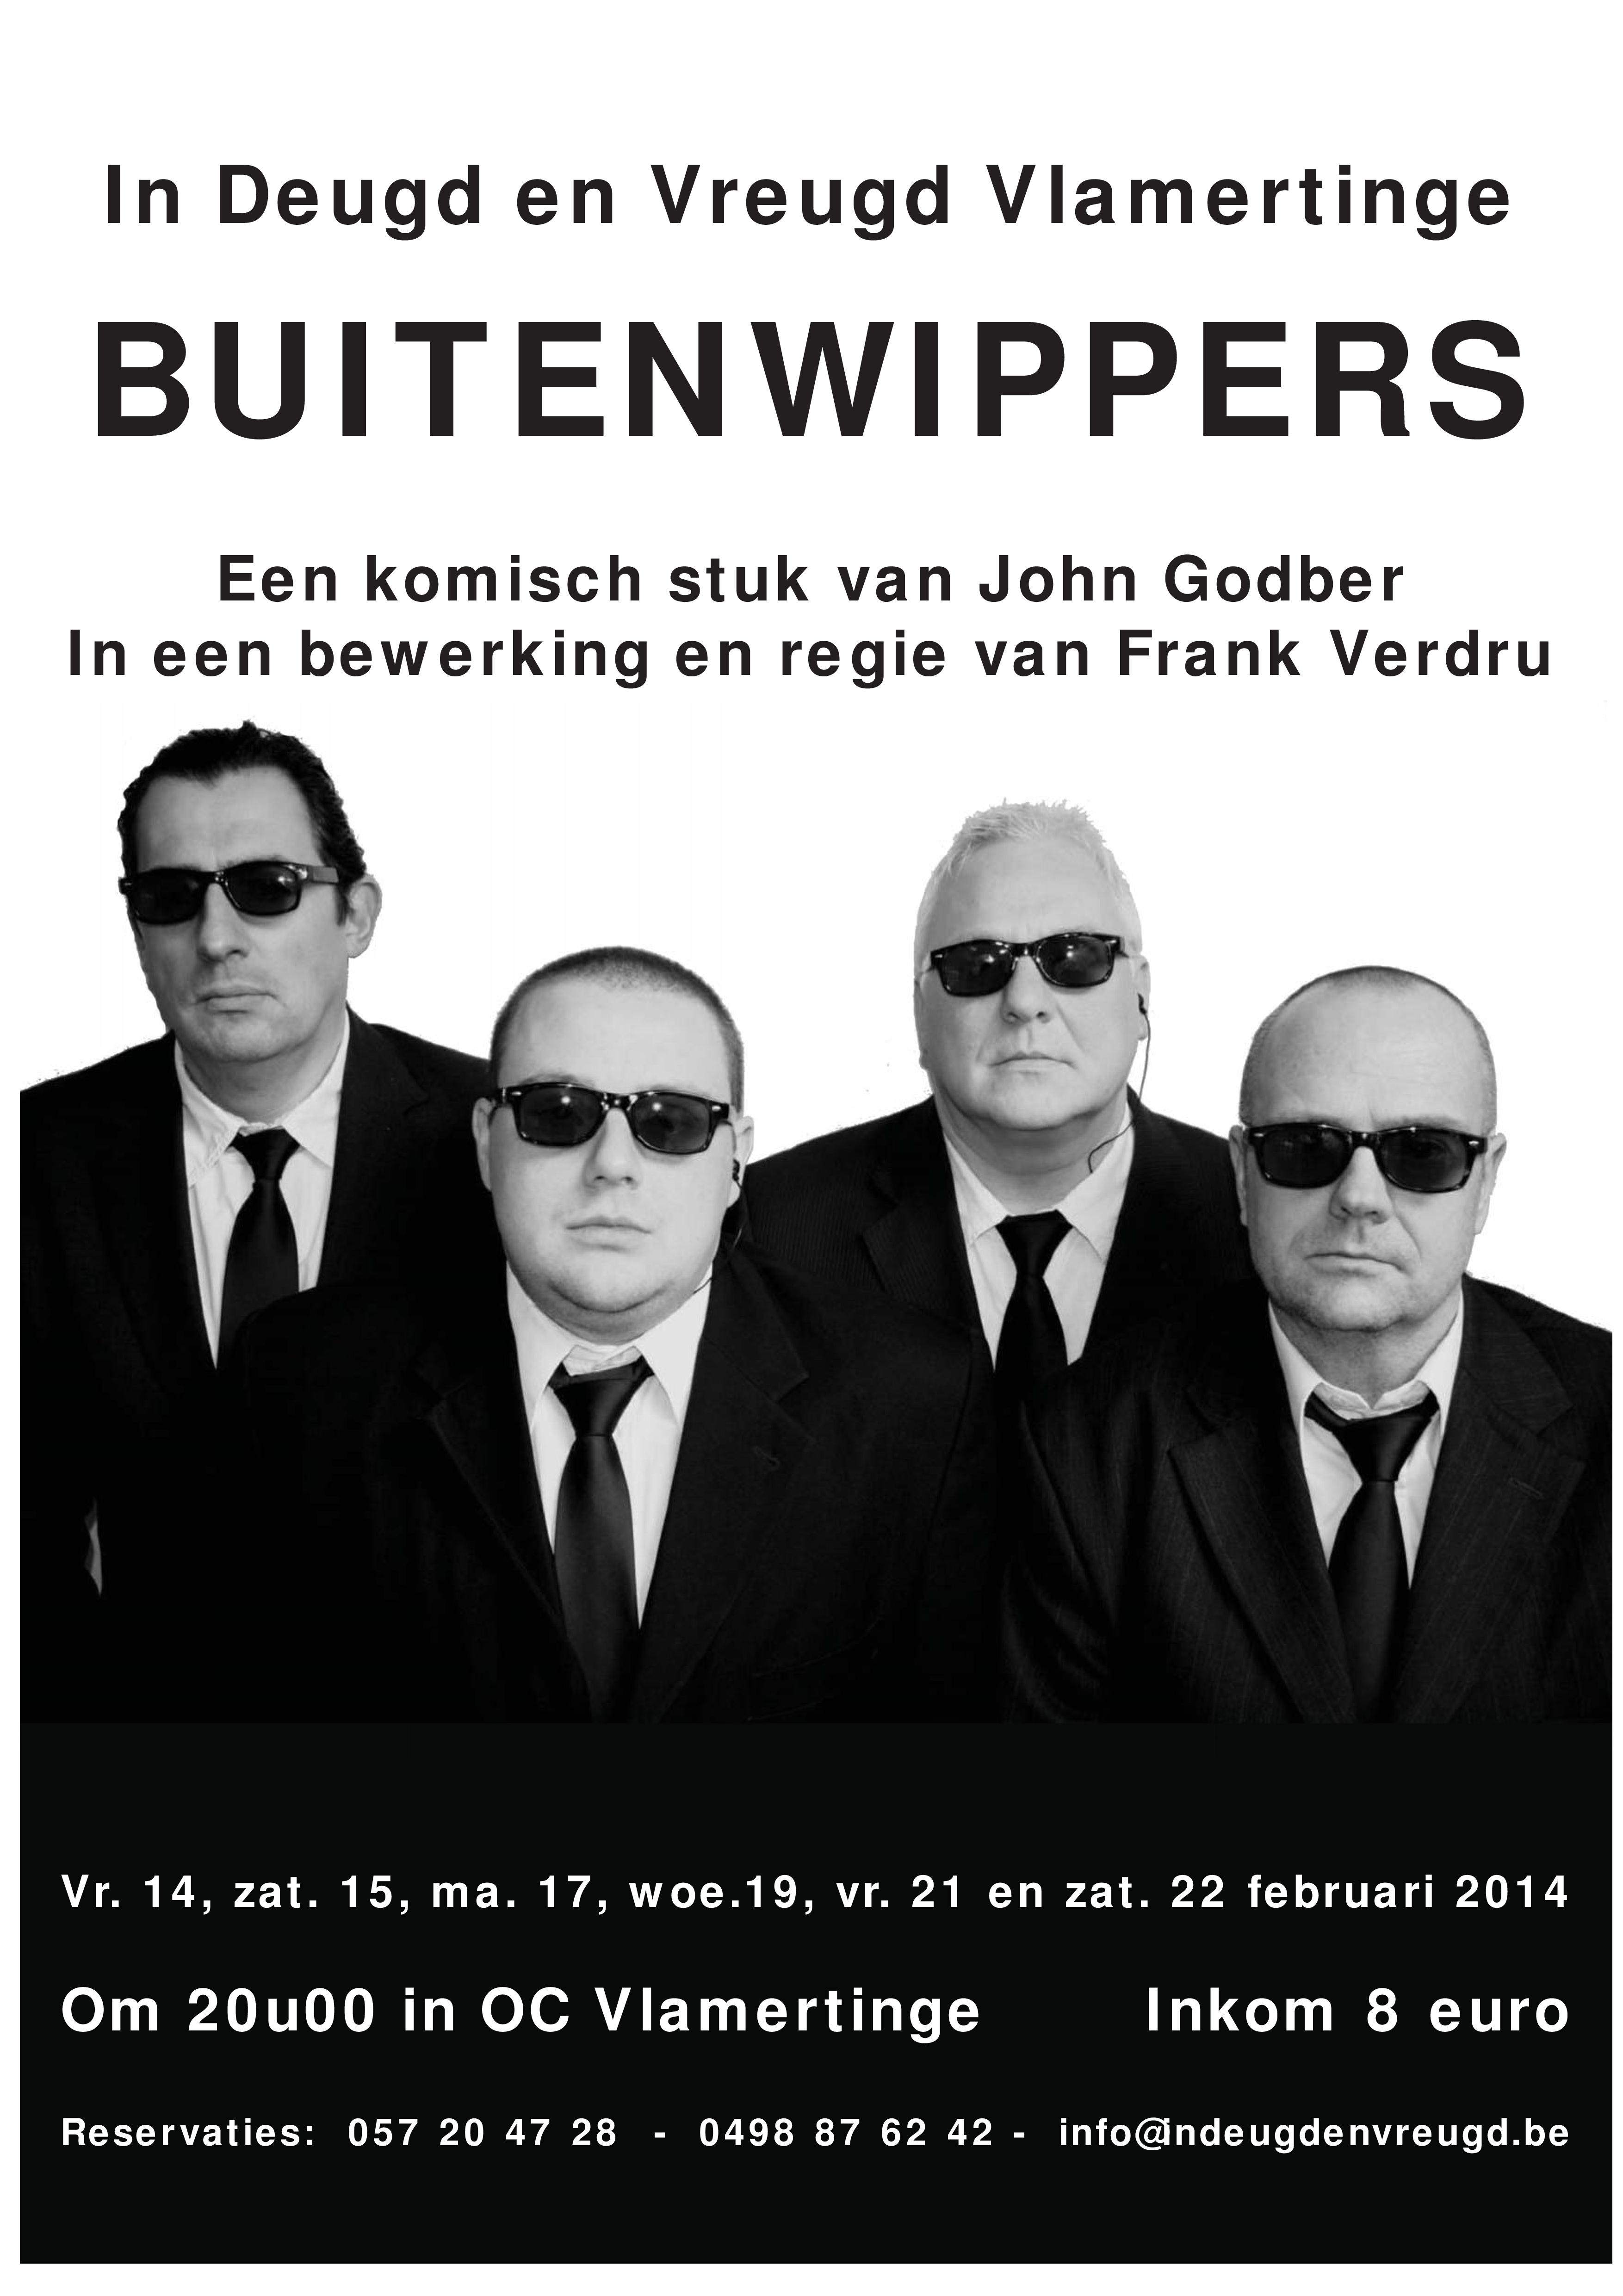 buitenwippers